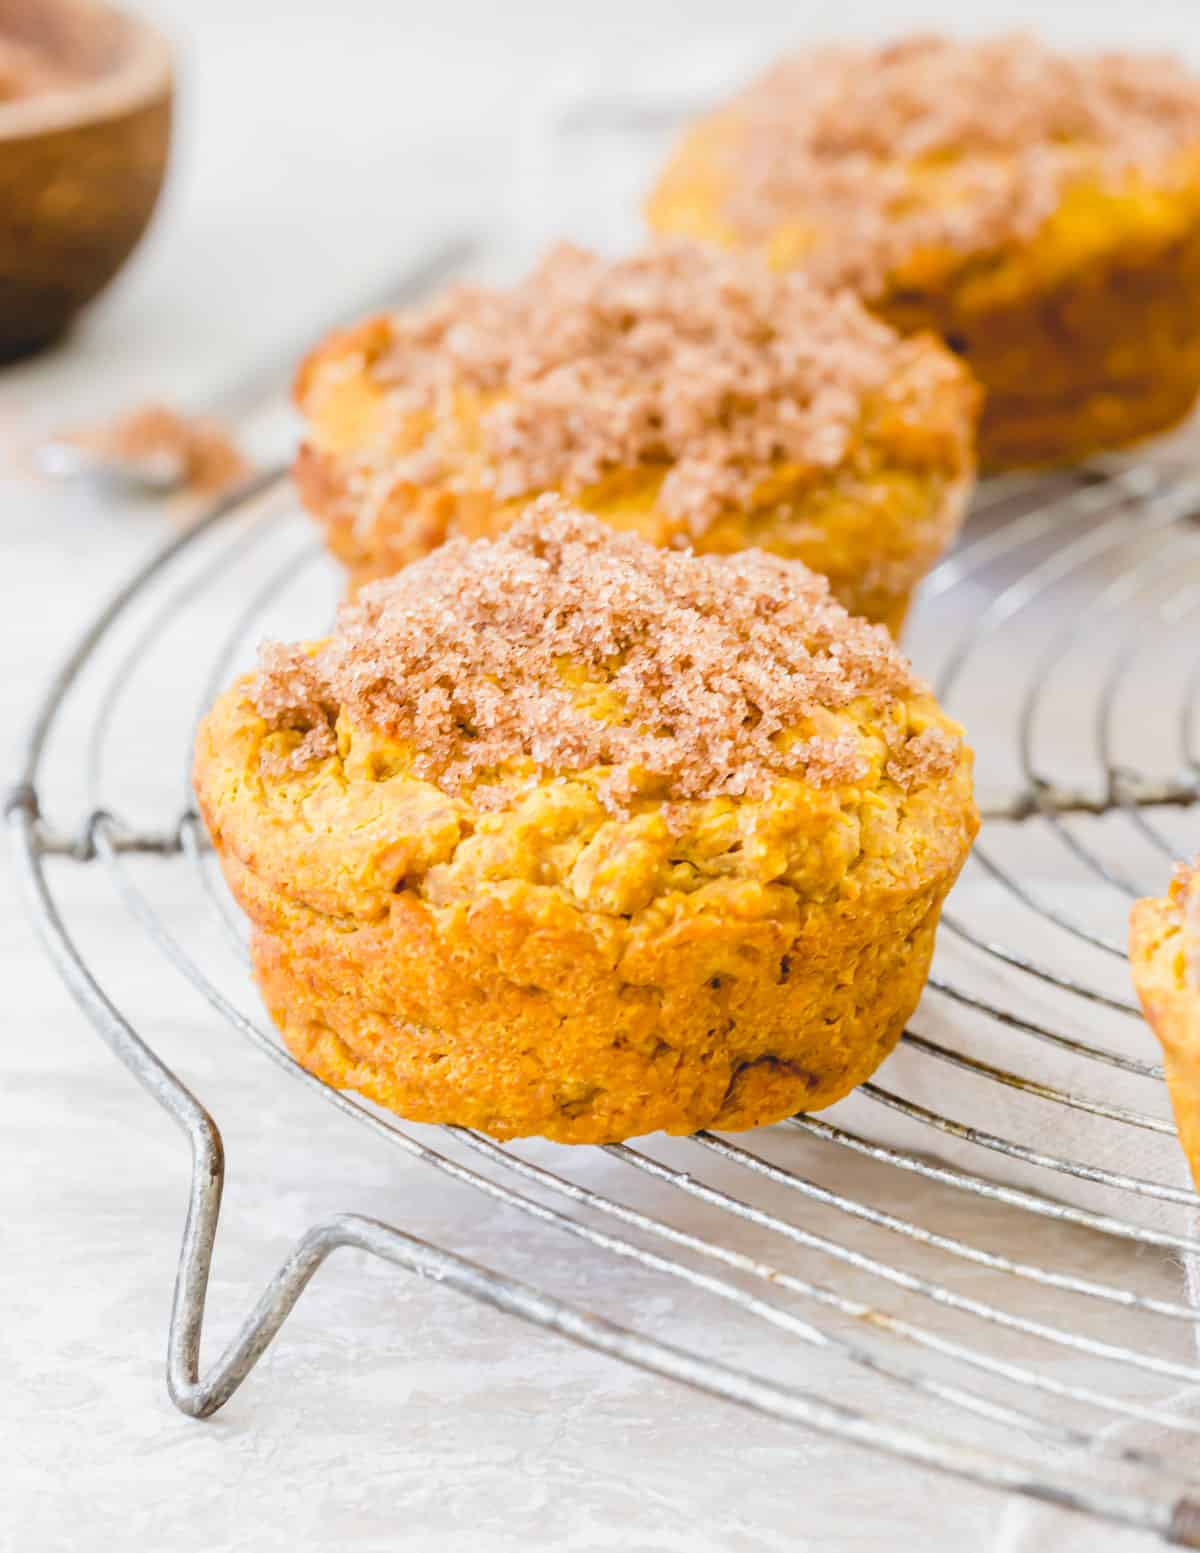 Gluten free pumpkin muffins topped with cinnamon sugar are a deliciously easy fall treat.